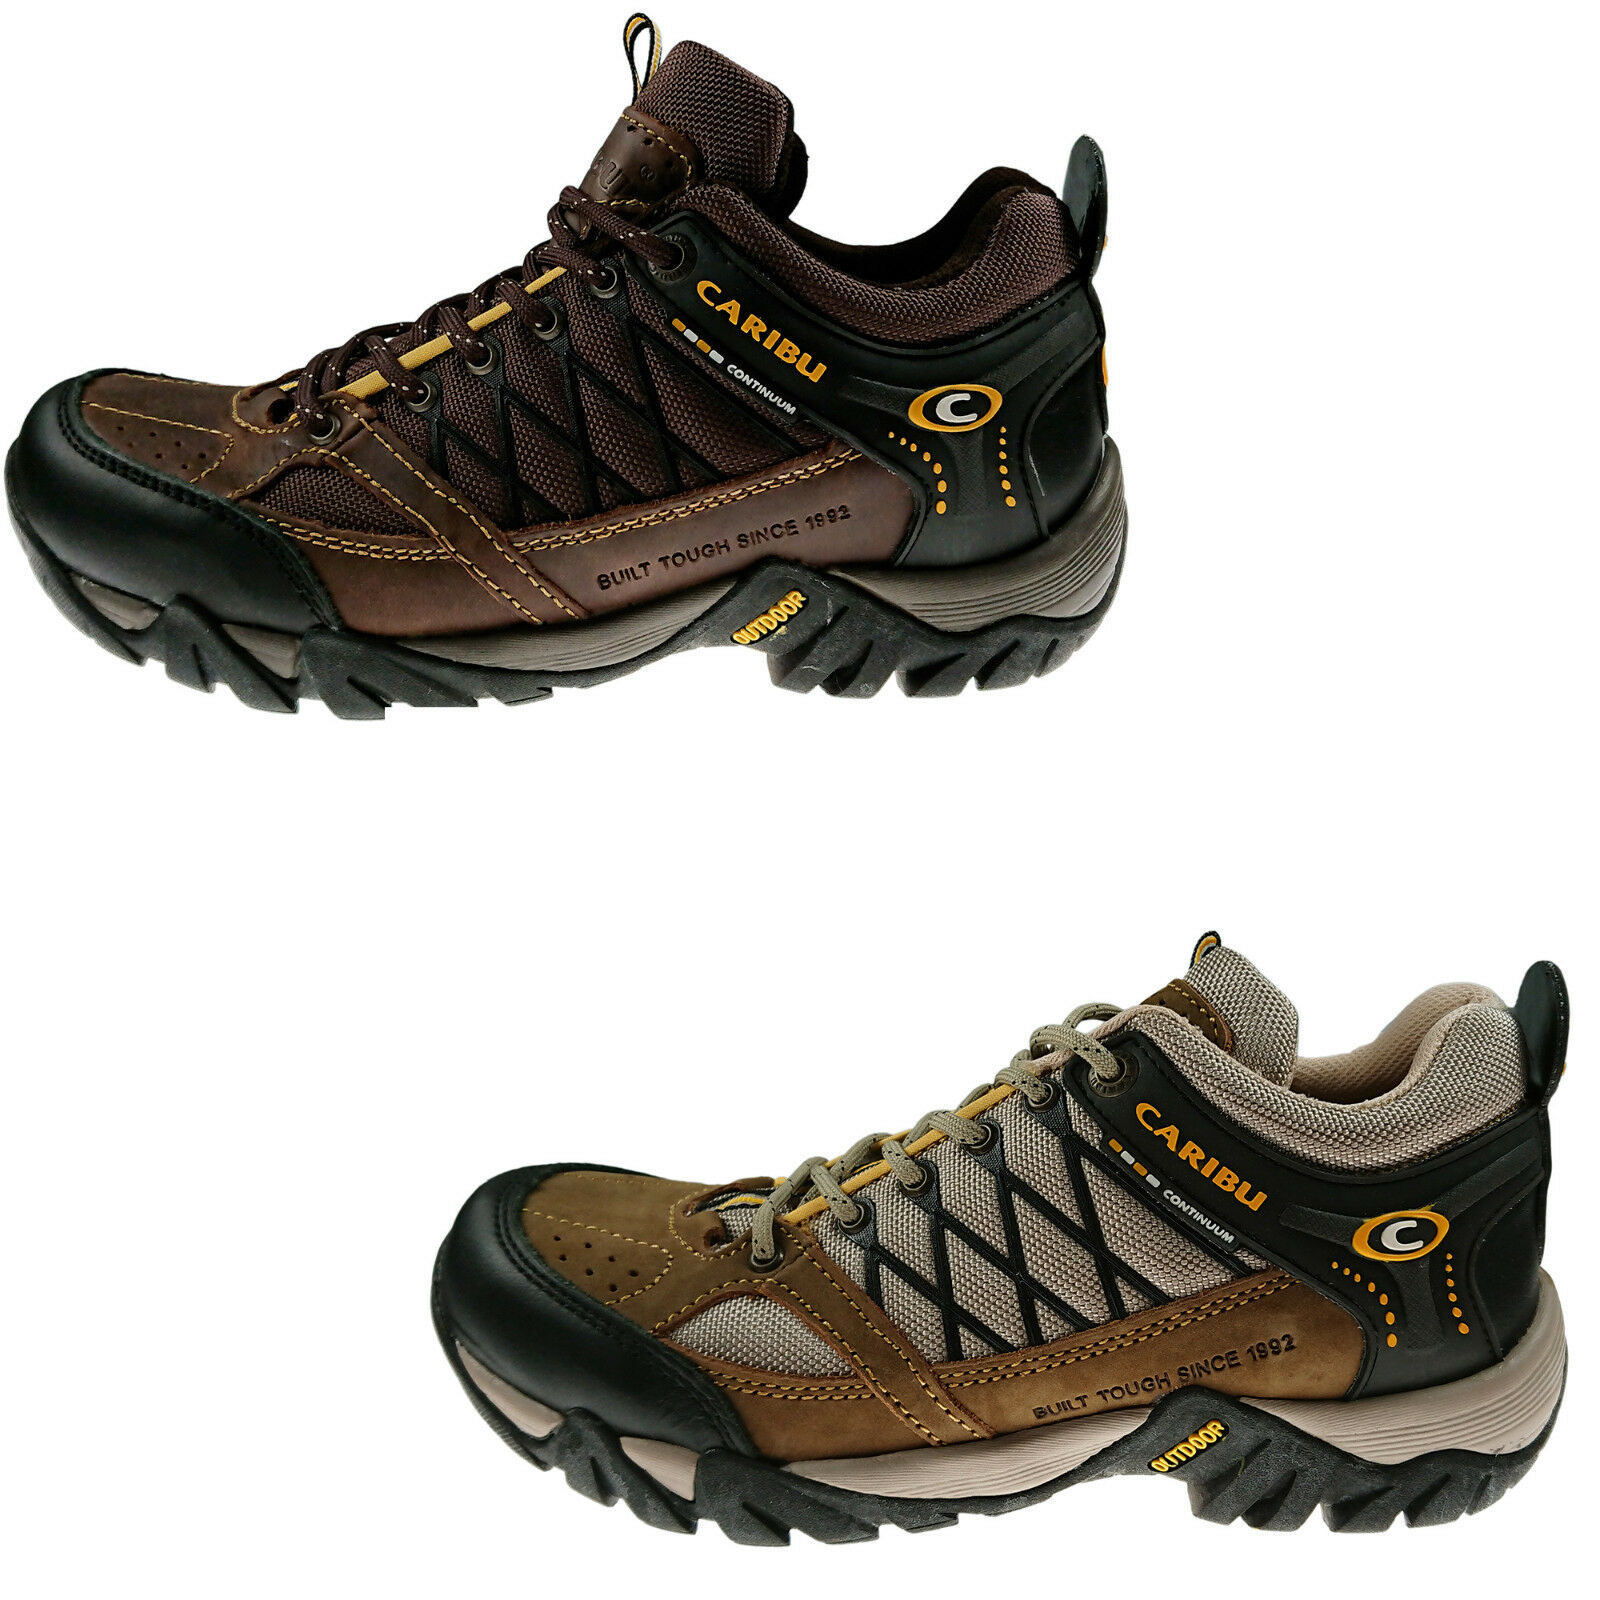 Men's Caribu Hiking Shoes Style 722E_ Made in Mexico_NWB_